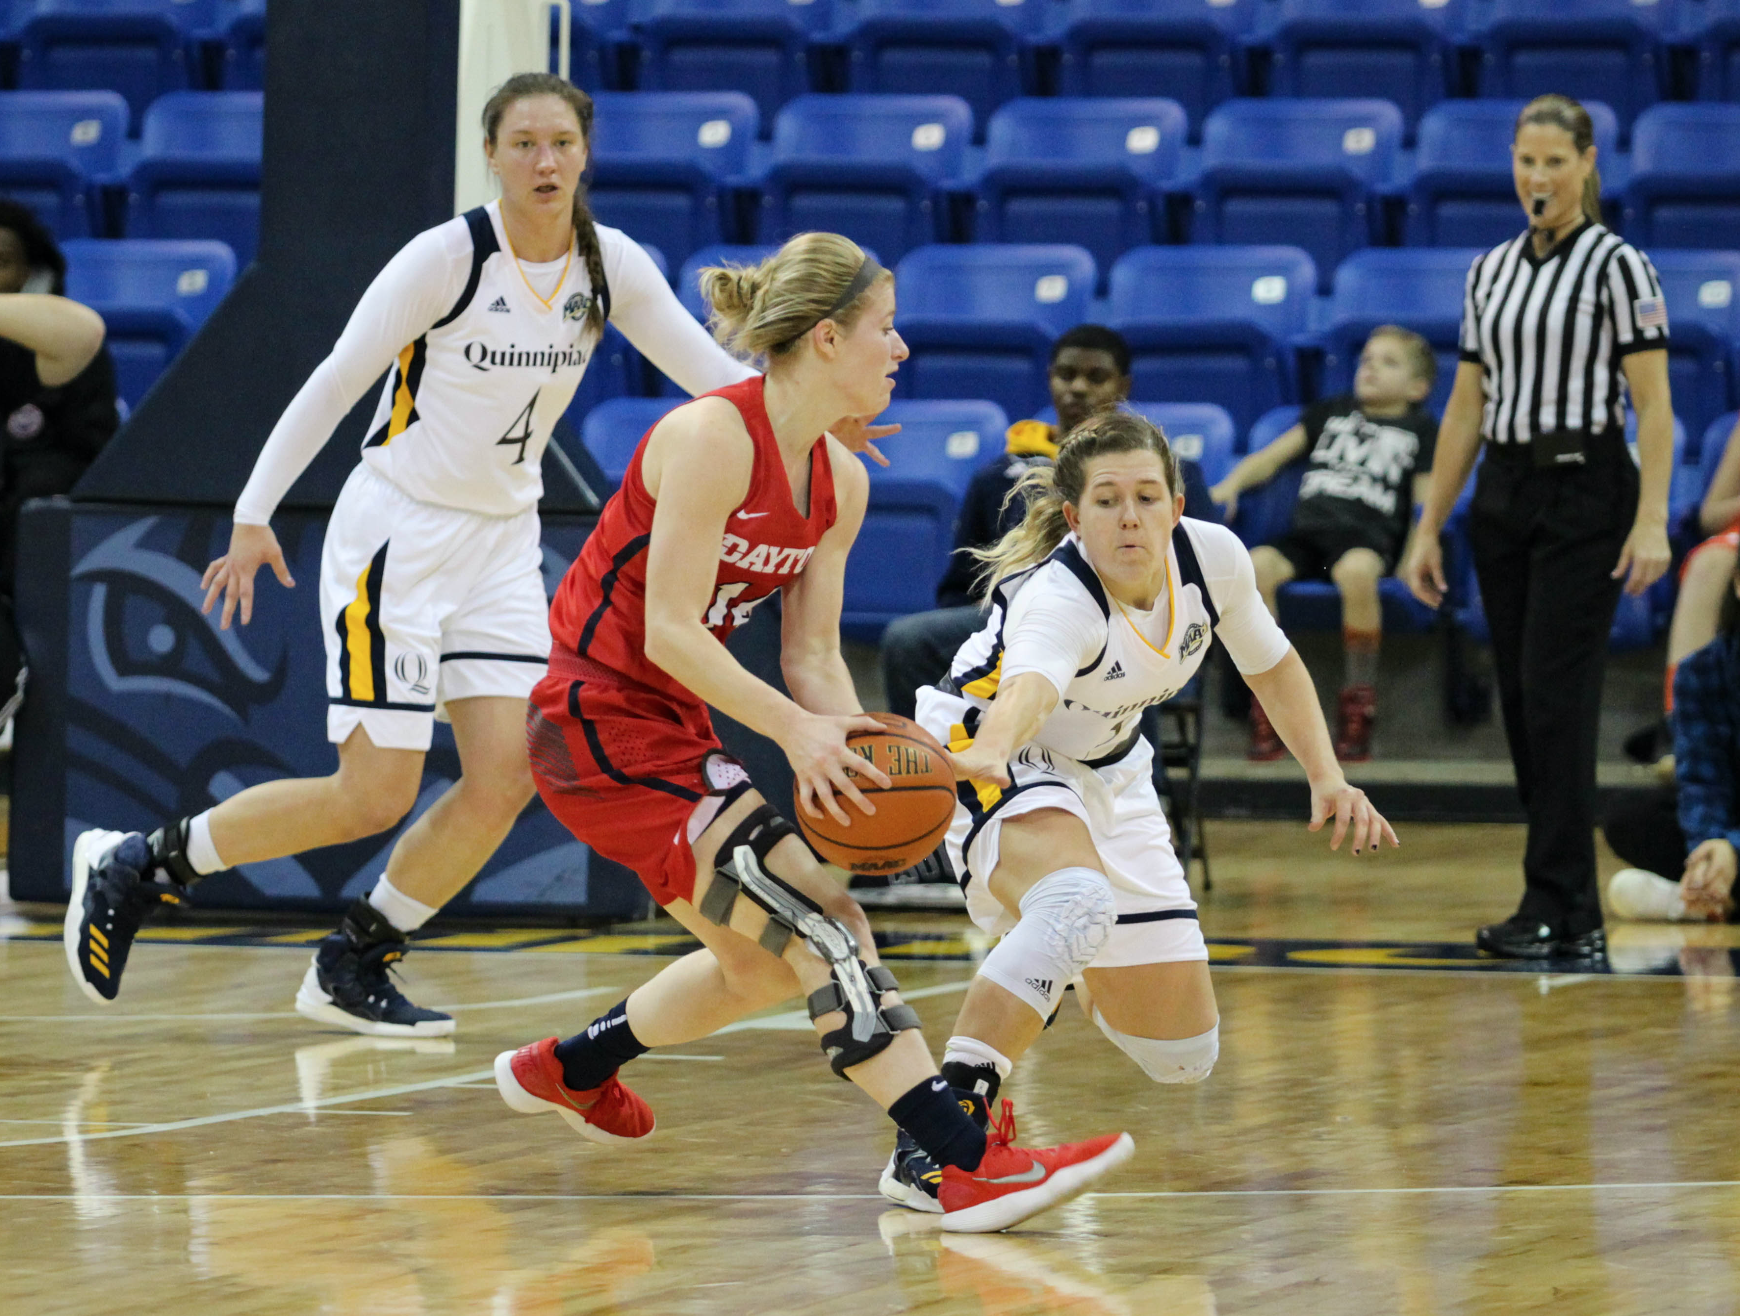 Quinnipiac women's basketball defeats Dayton, 72-66